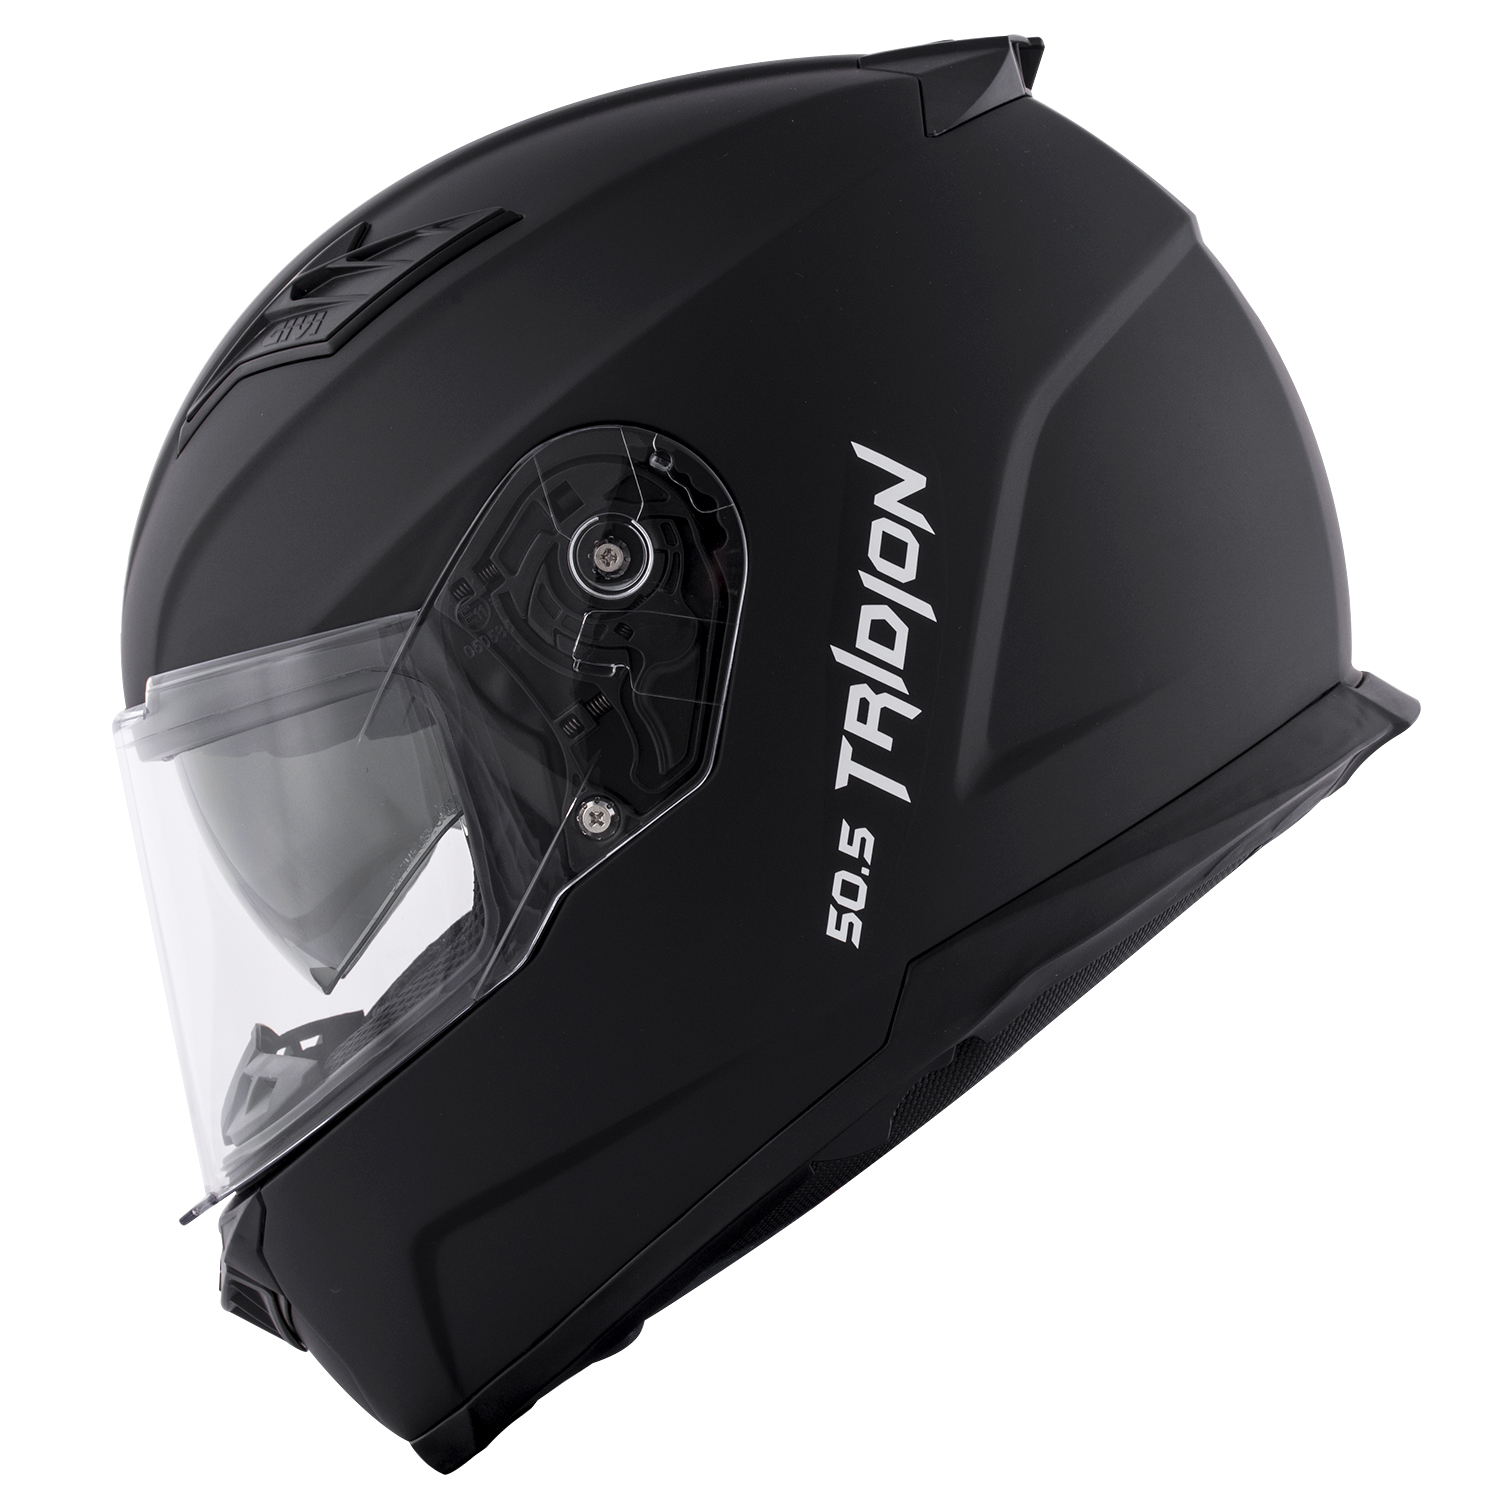 caschi FULL FACE 50.5 TRIDION-SOLID COLOUR